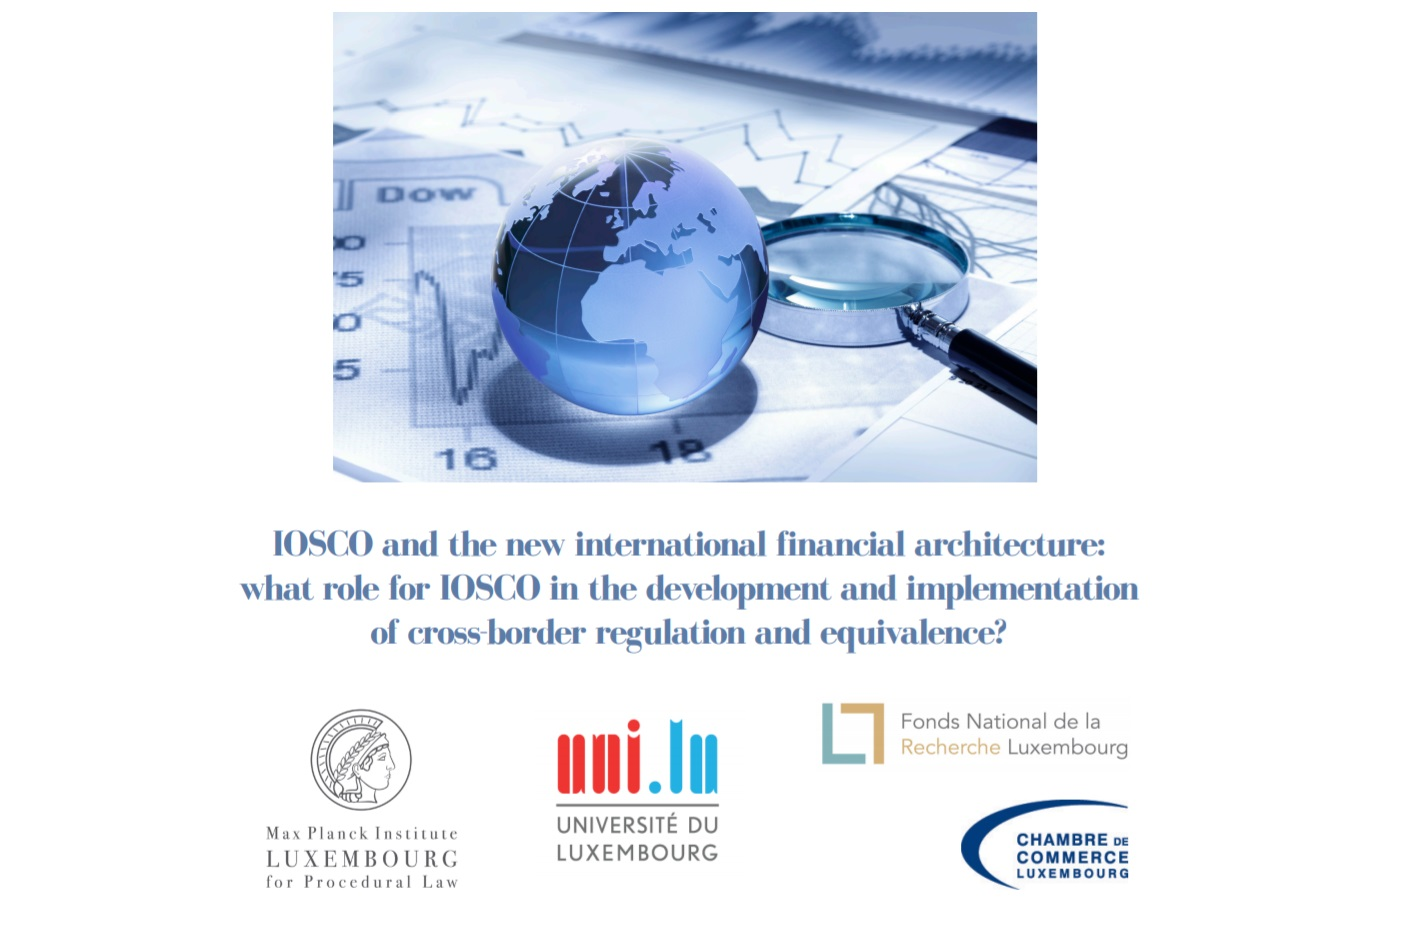 Conference: IOSCO and the new international financial architecture | FNR –  Luxembourg National Research Fund